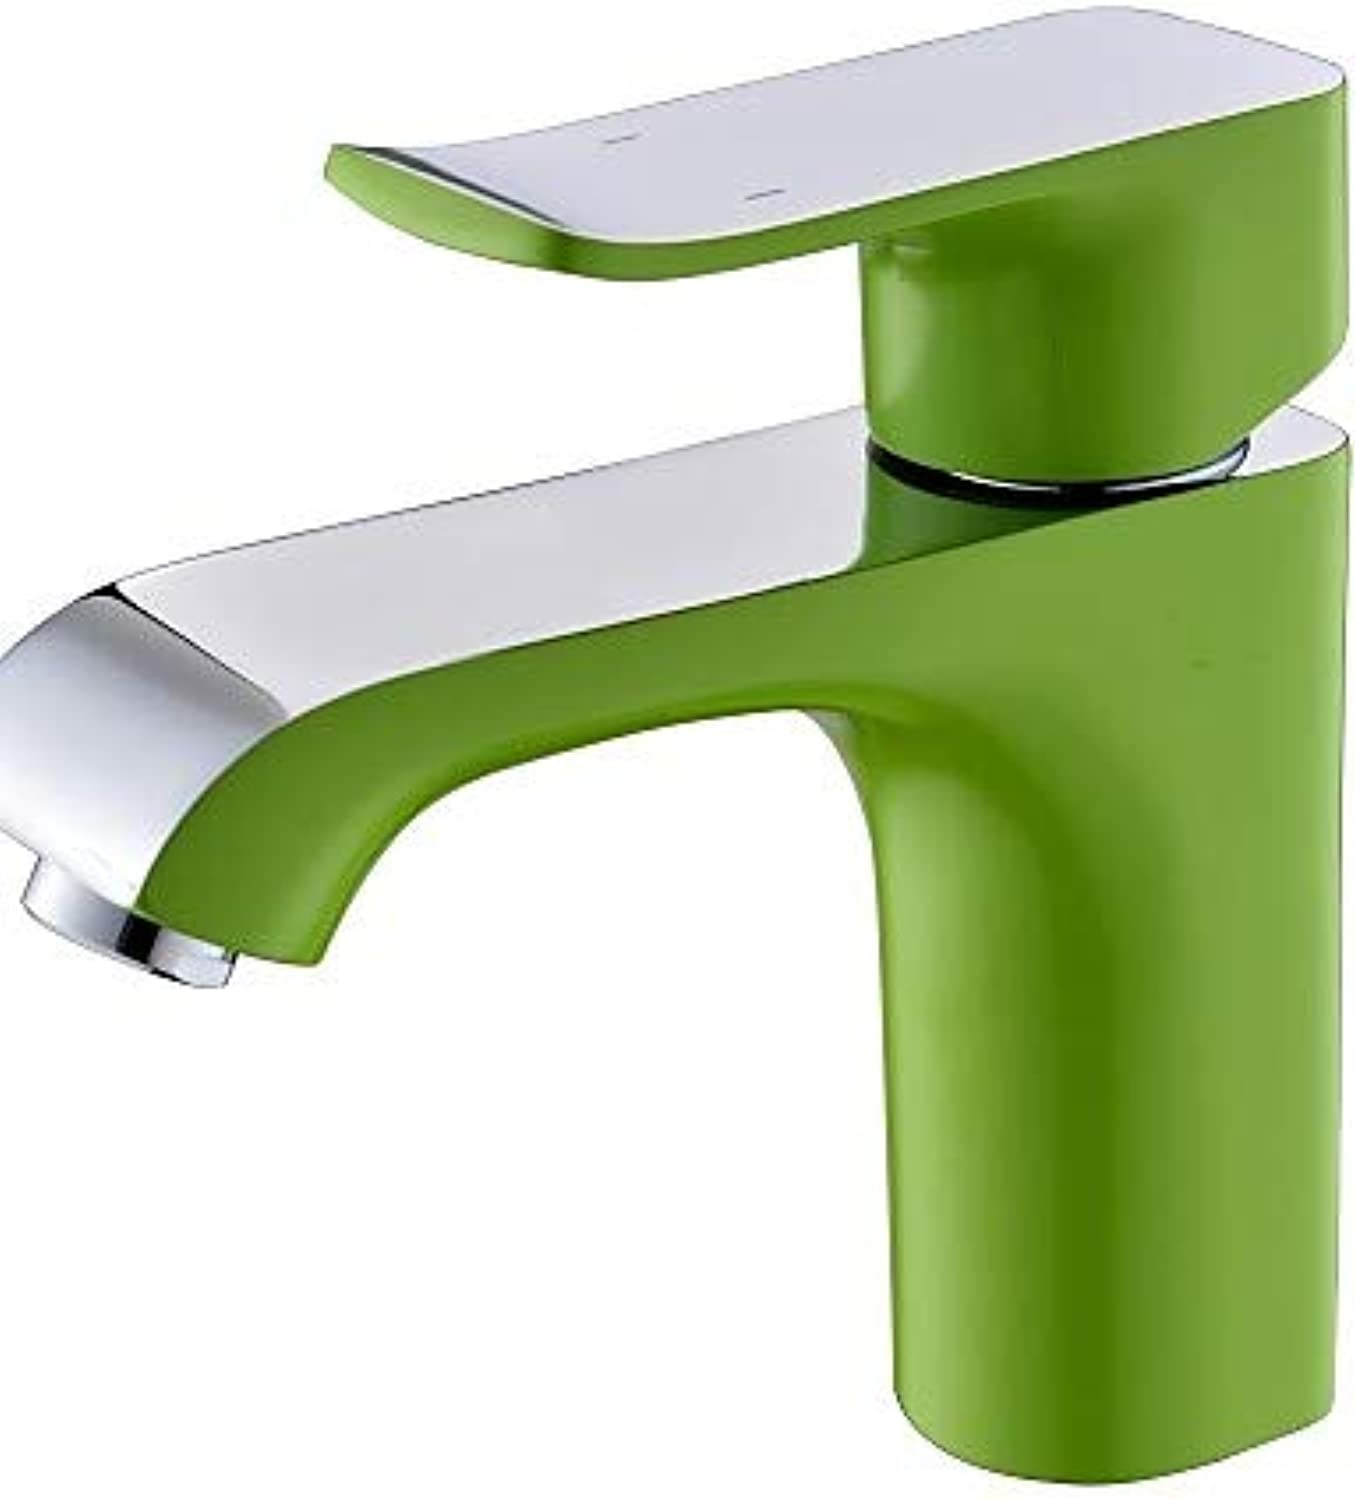 Mainstream home LPZSQ Tap Contemporary Green Painting One Hole Single Handle Bathroom Sink Faucet  767